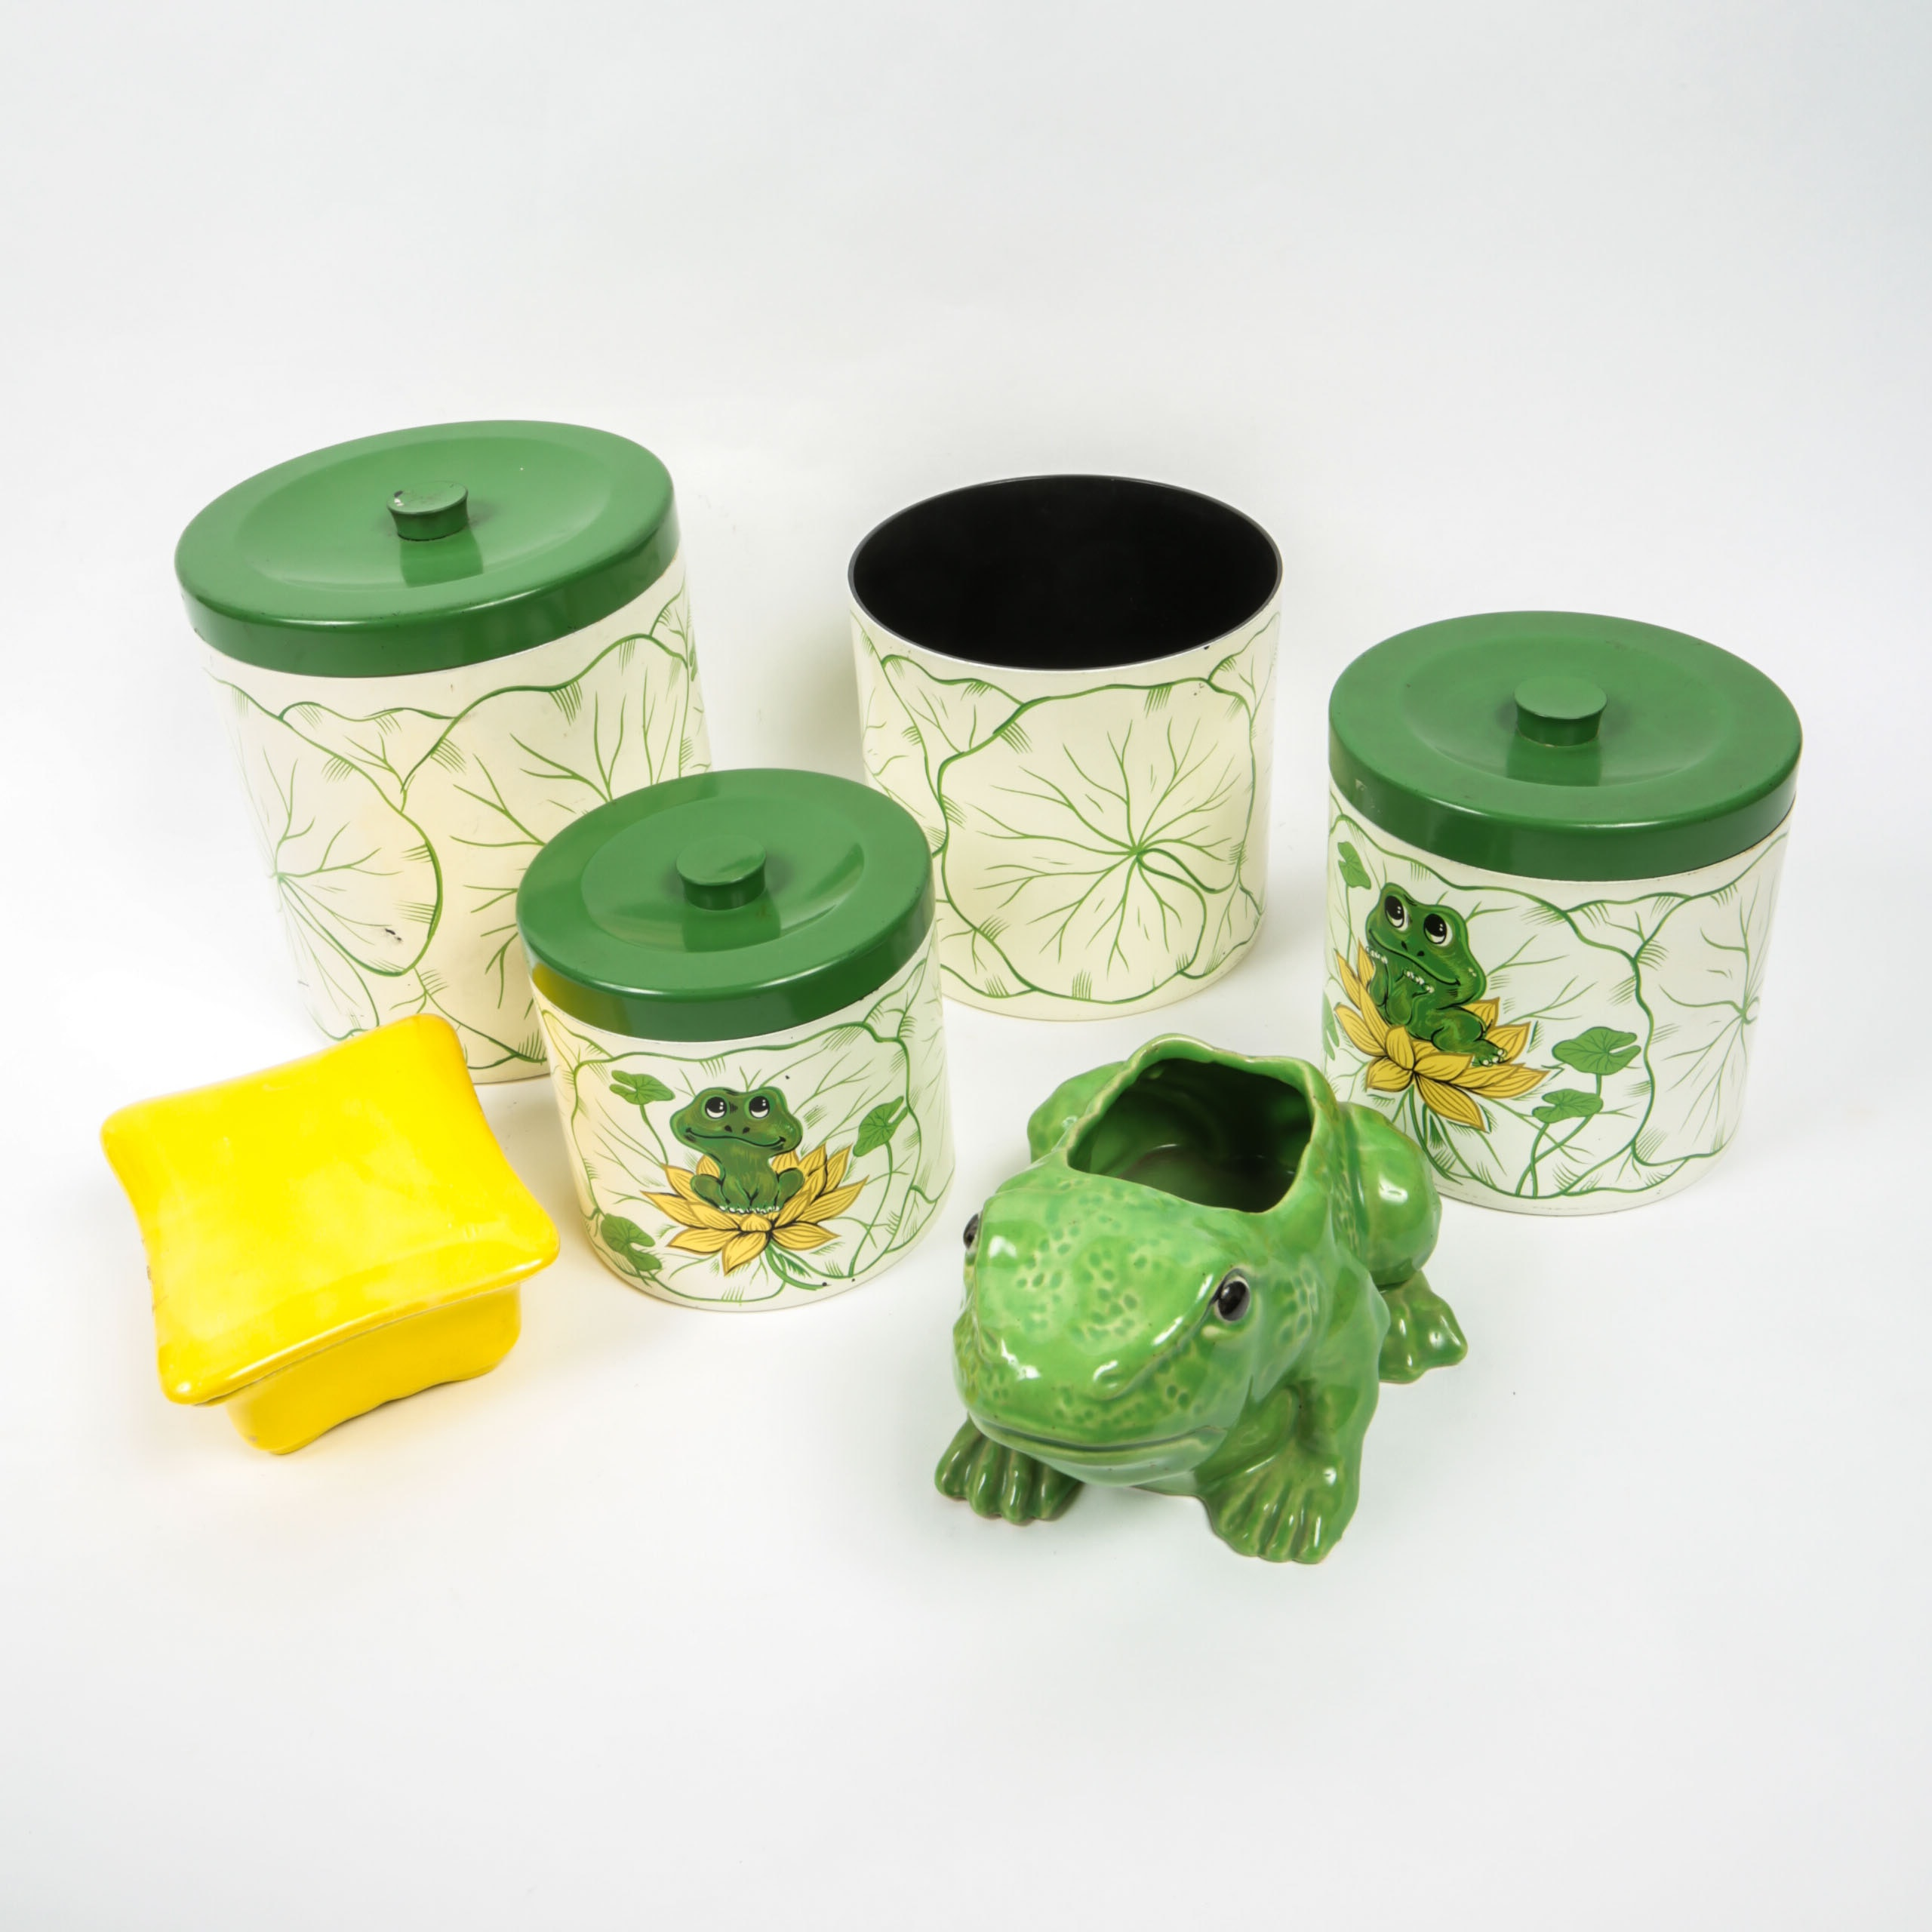 Frog-Themed Kitchenalia Collection